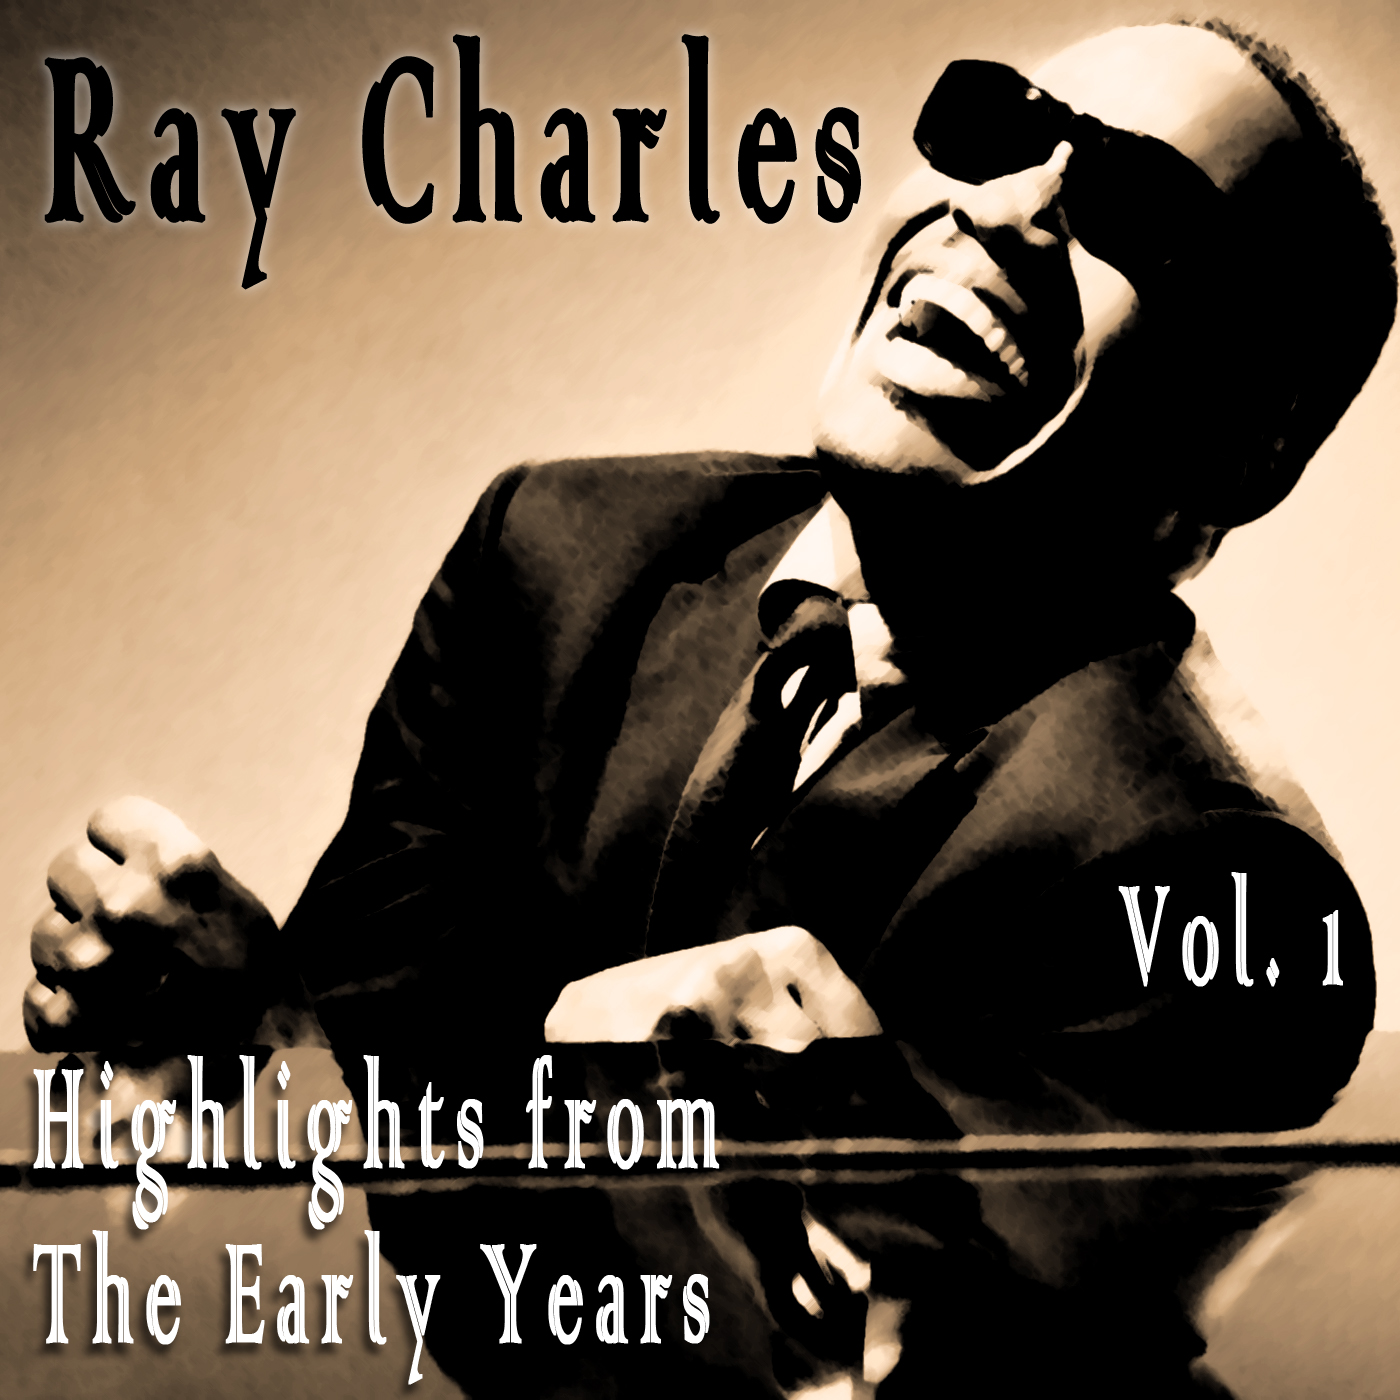 Ray Charles Early Years Vol 1